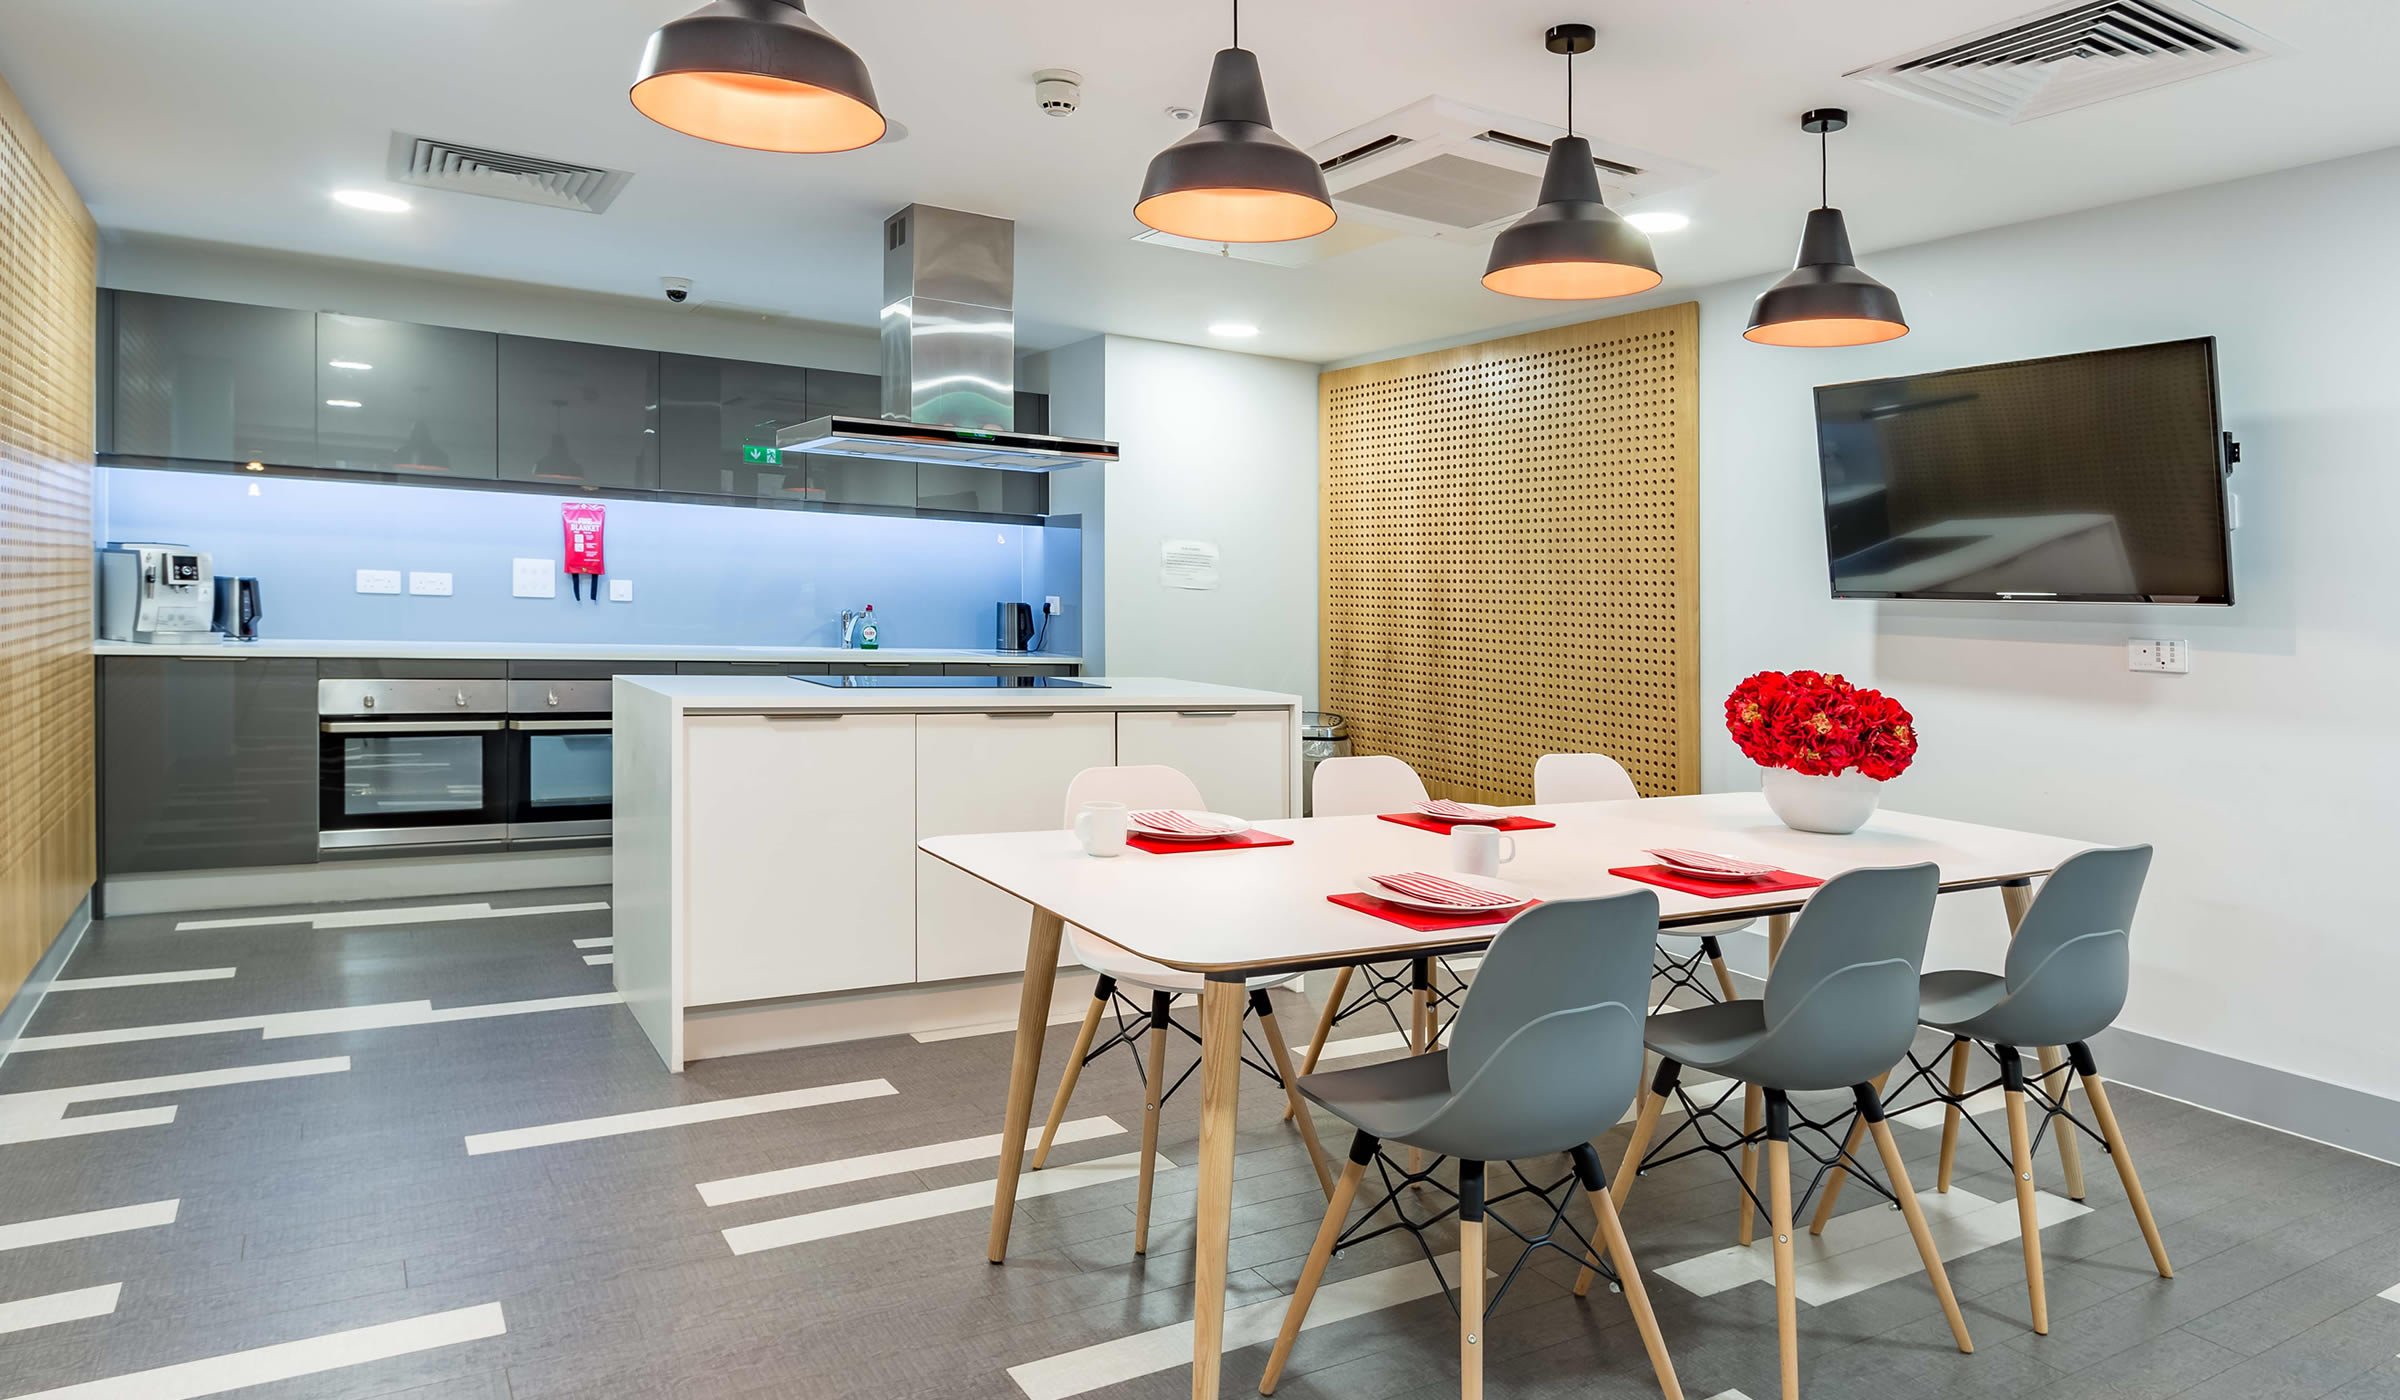 Vibe student accommodation dining area